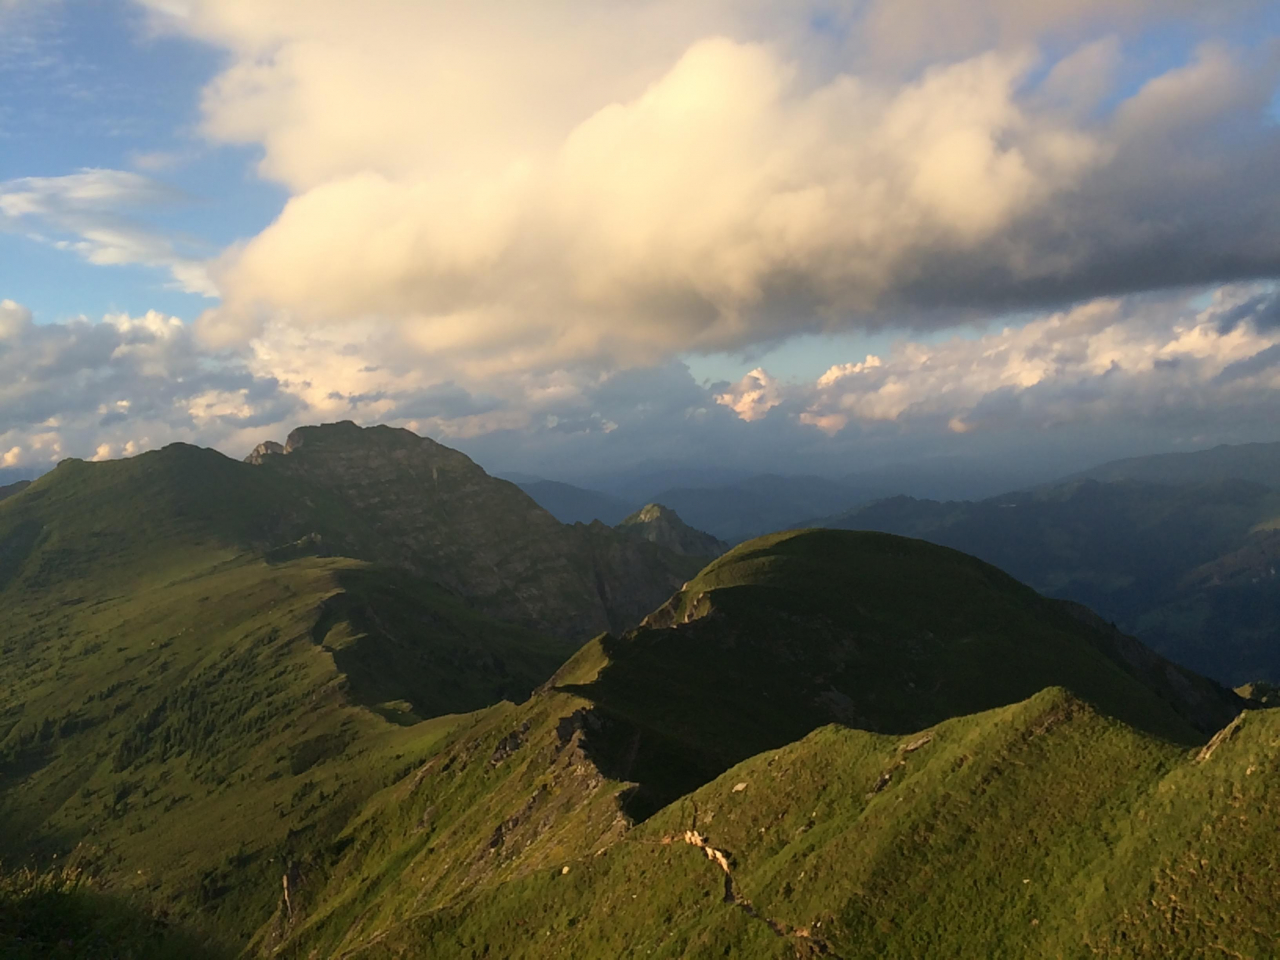 A picture from Bad Hofgastein by Natalie Chwalek